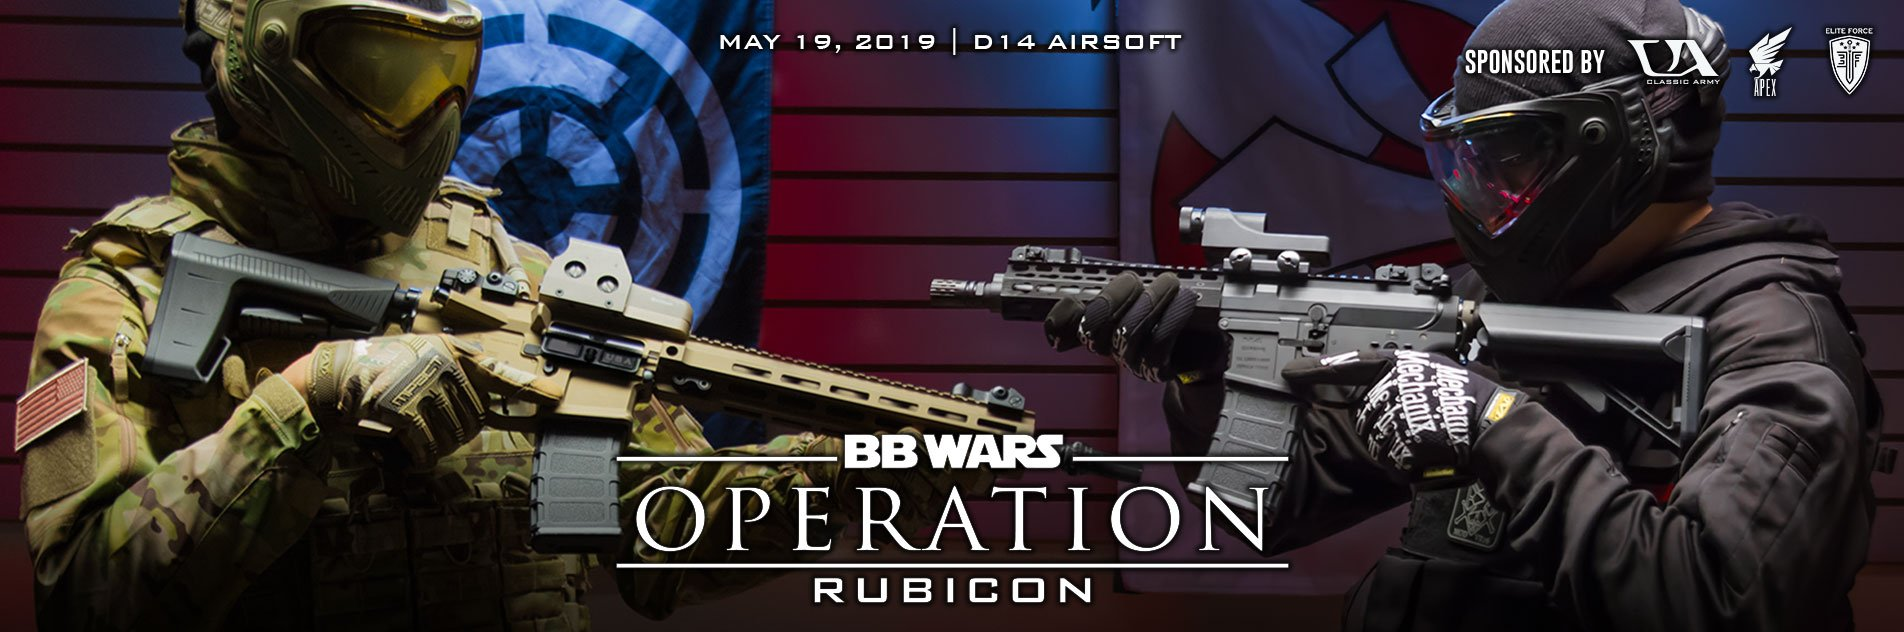 BB Wars Operation Rubicon